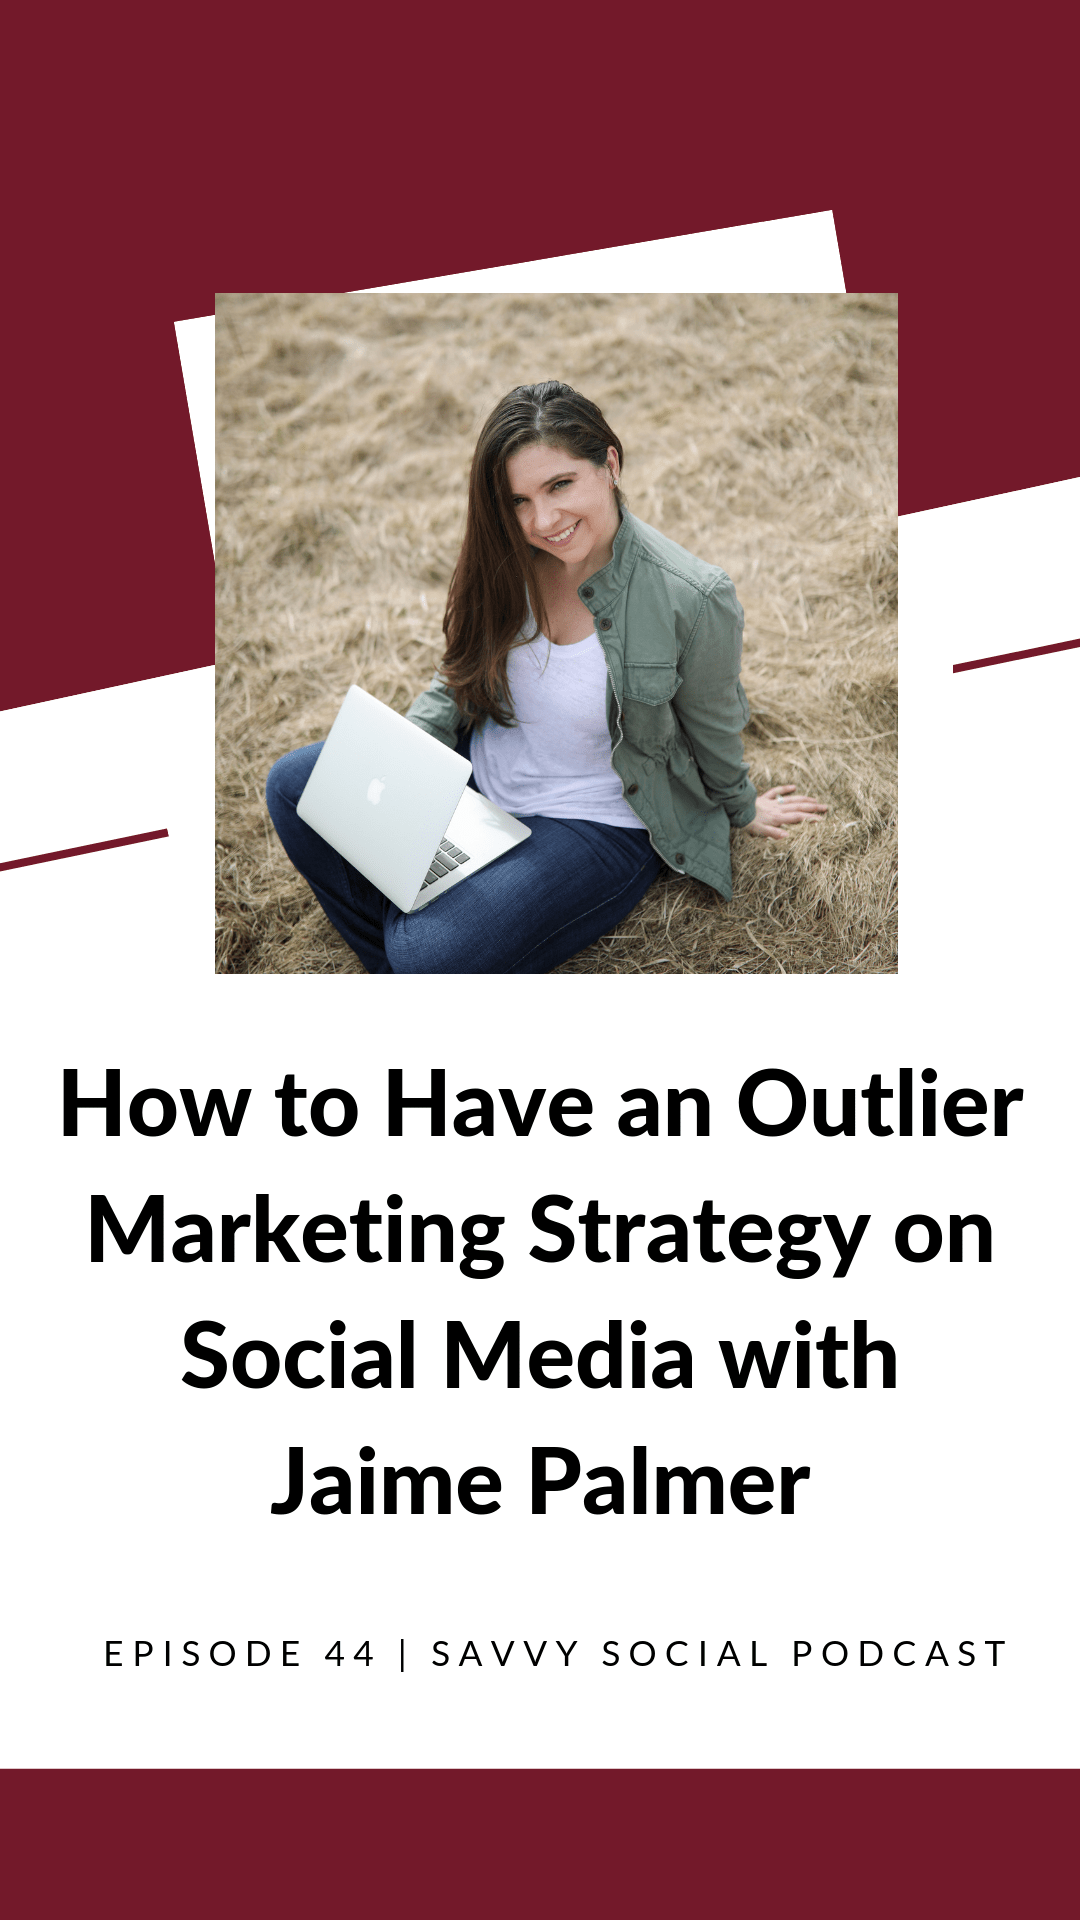 How to Have an Outlier Marketing Strategy on Social Media with Jamie Palmer